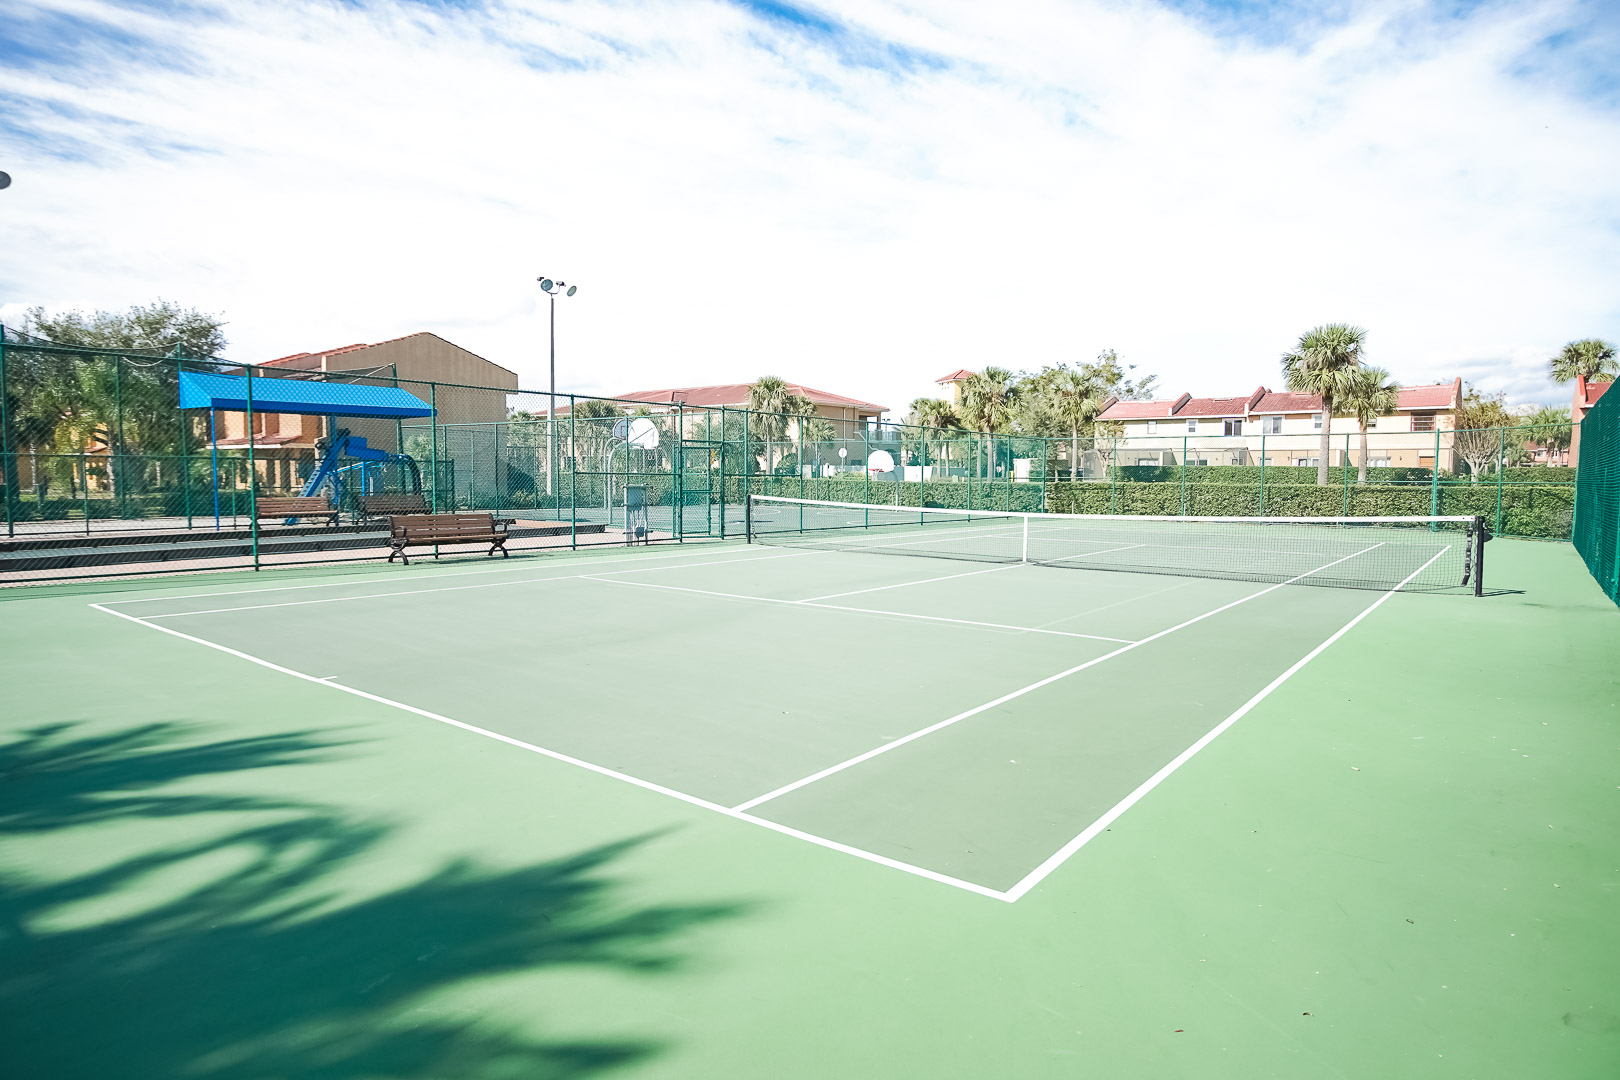 An expansive view of the tennis court at VRI's Fantasy World Resort in Florida.